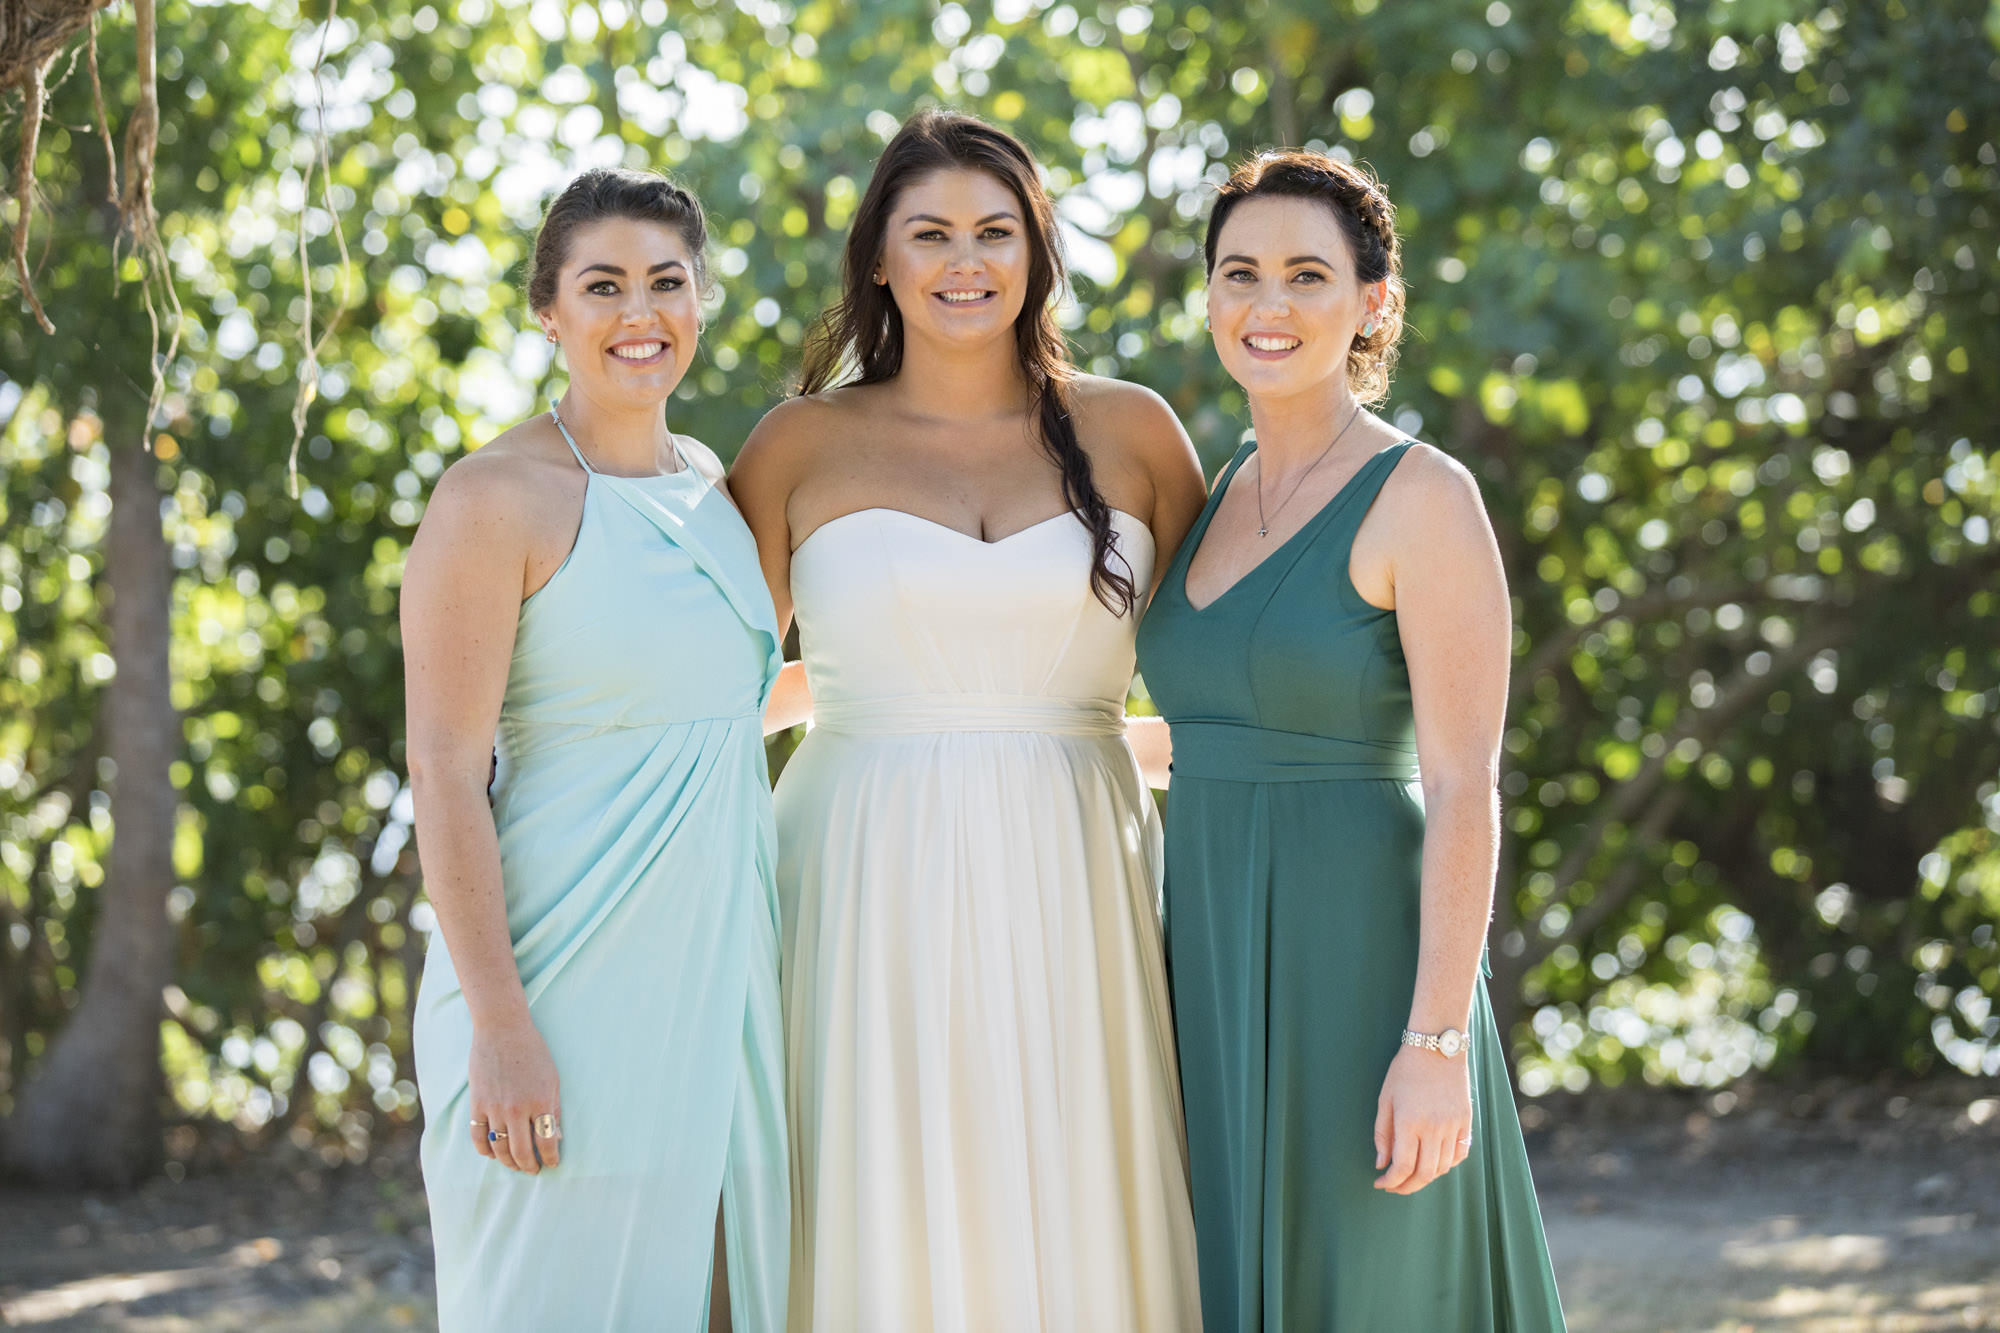 73 Catseye Productions Wedding Photographer Port Douglas Barrett 044A0978